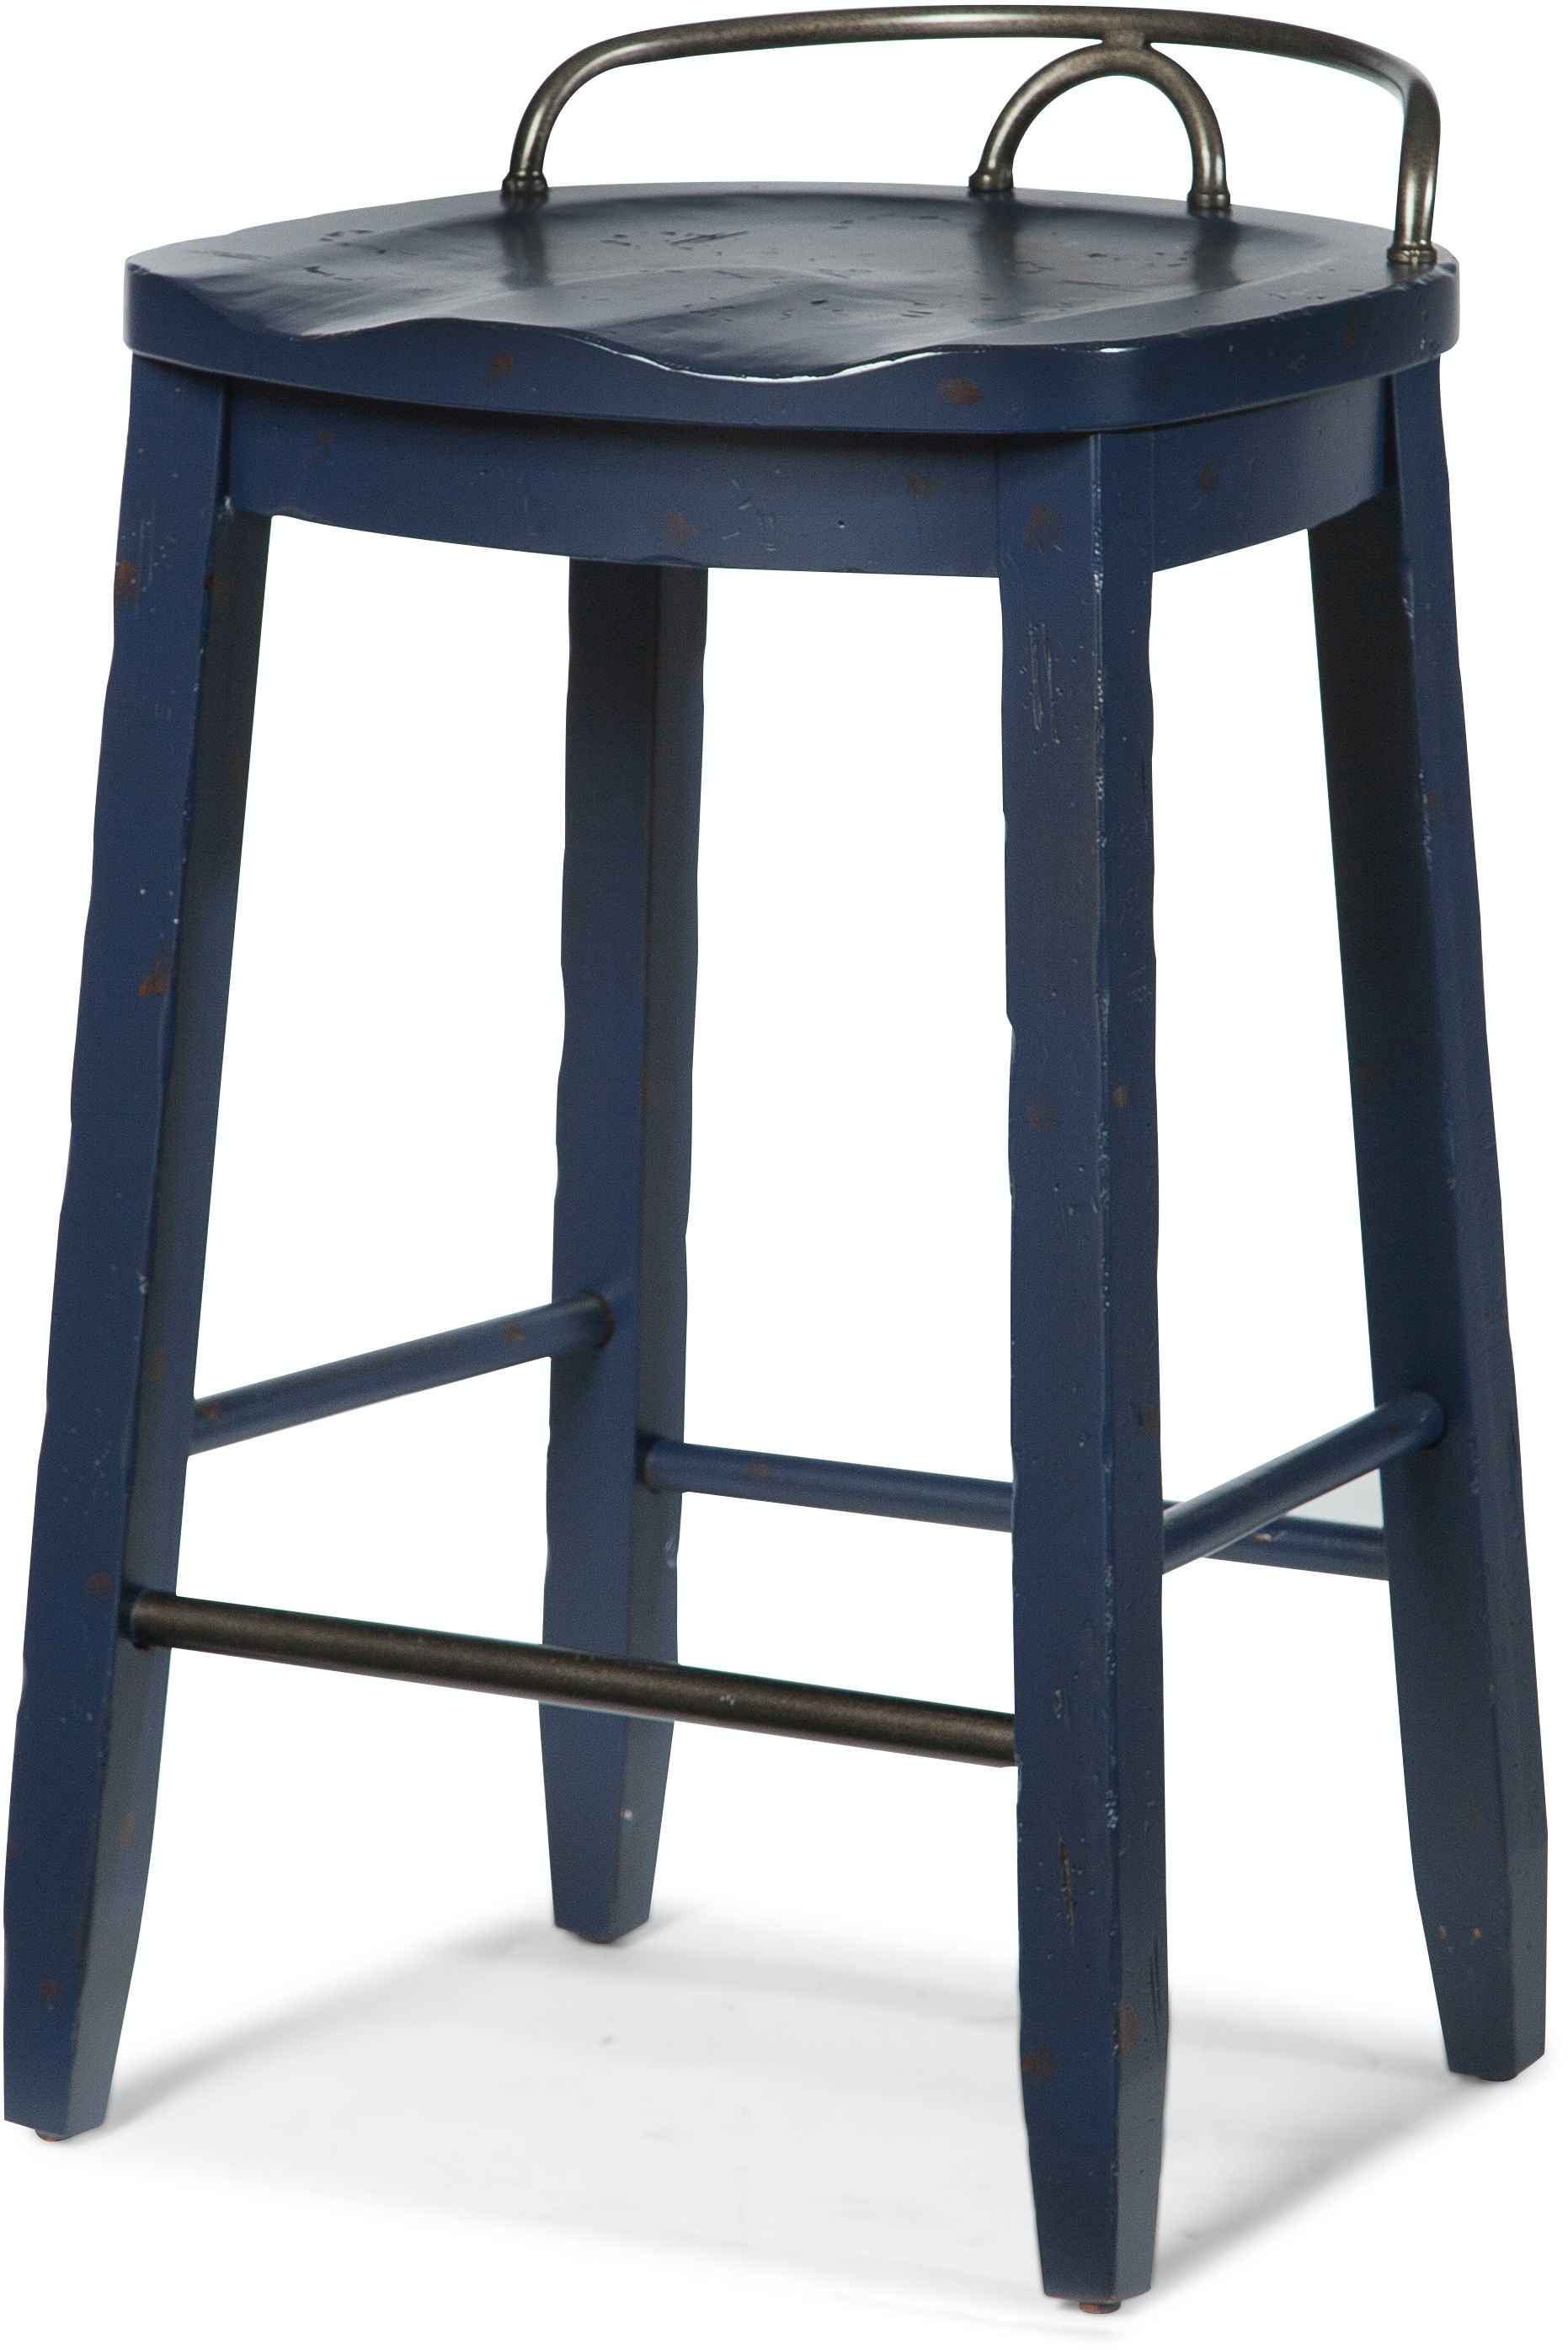 Trisha Yearwood Dining Room Cowboy Bar Stool 921 924 Stool